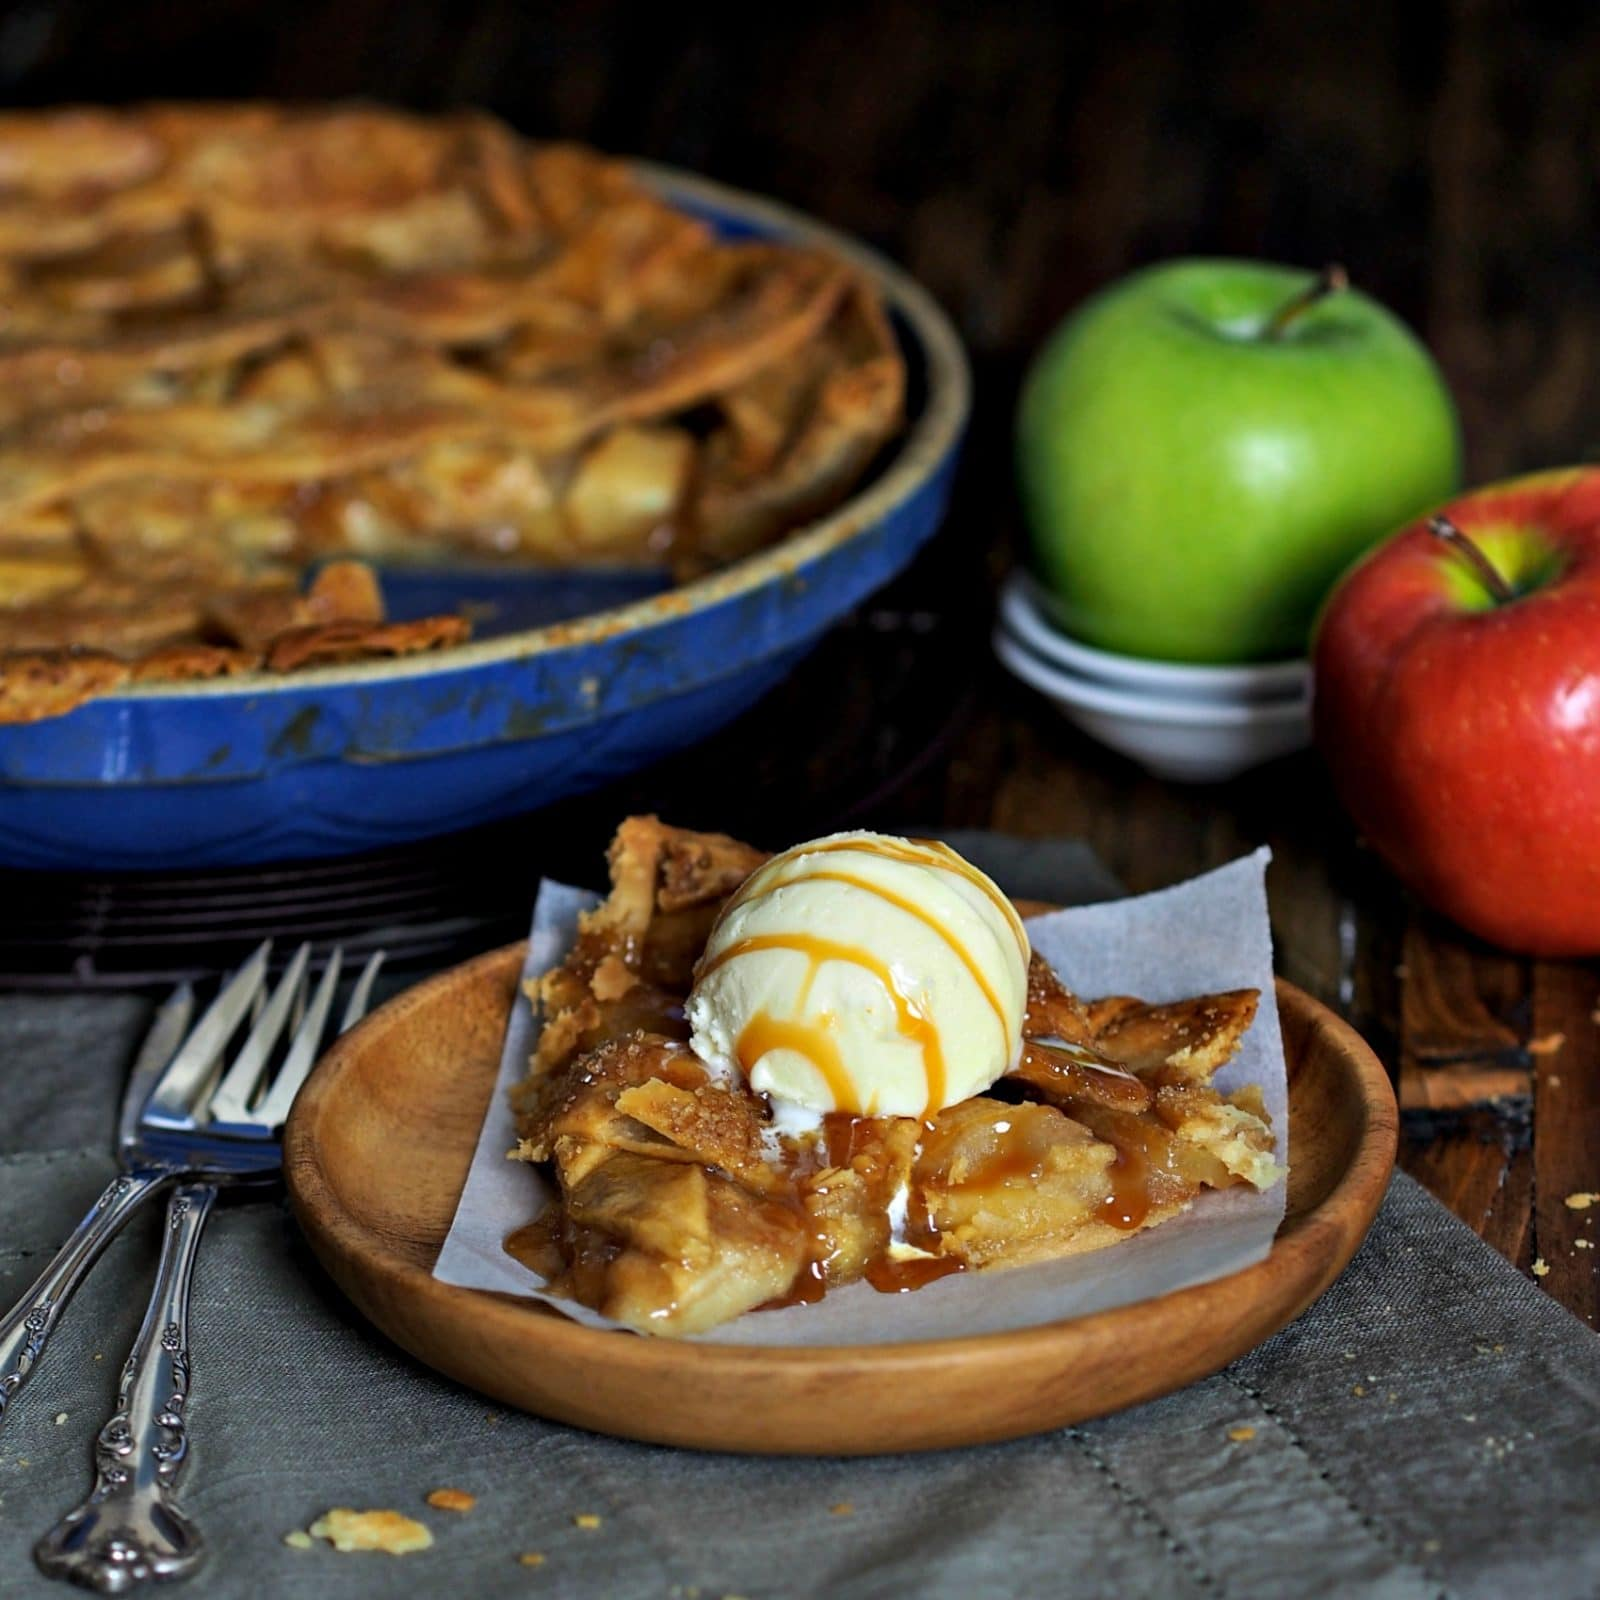 Salted Caramel Apple Tart (made the easy way) with store-bought Salted Caramel Sauce & pie crust is as easy as can be. Sweet/salty/delicious. Simply Sated